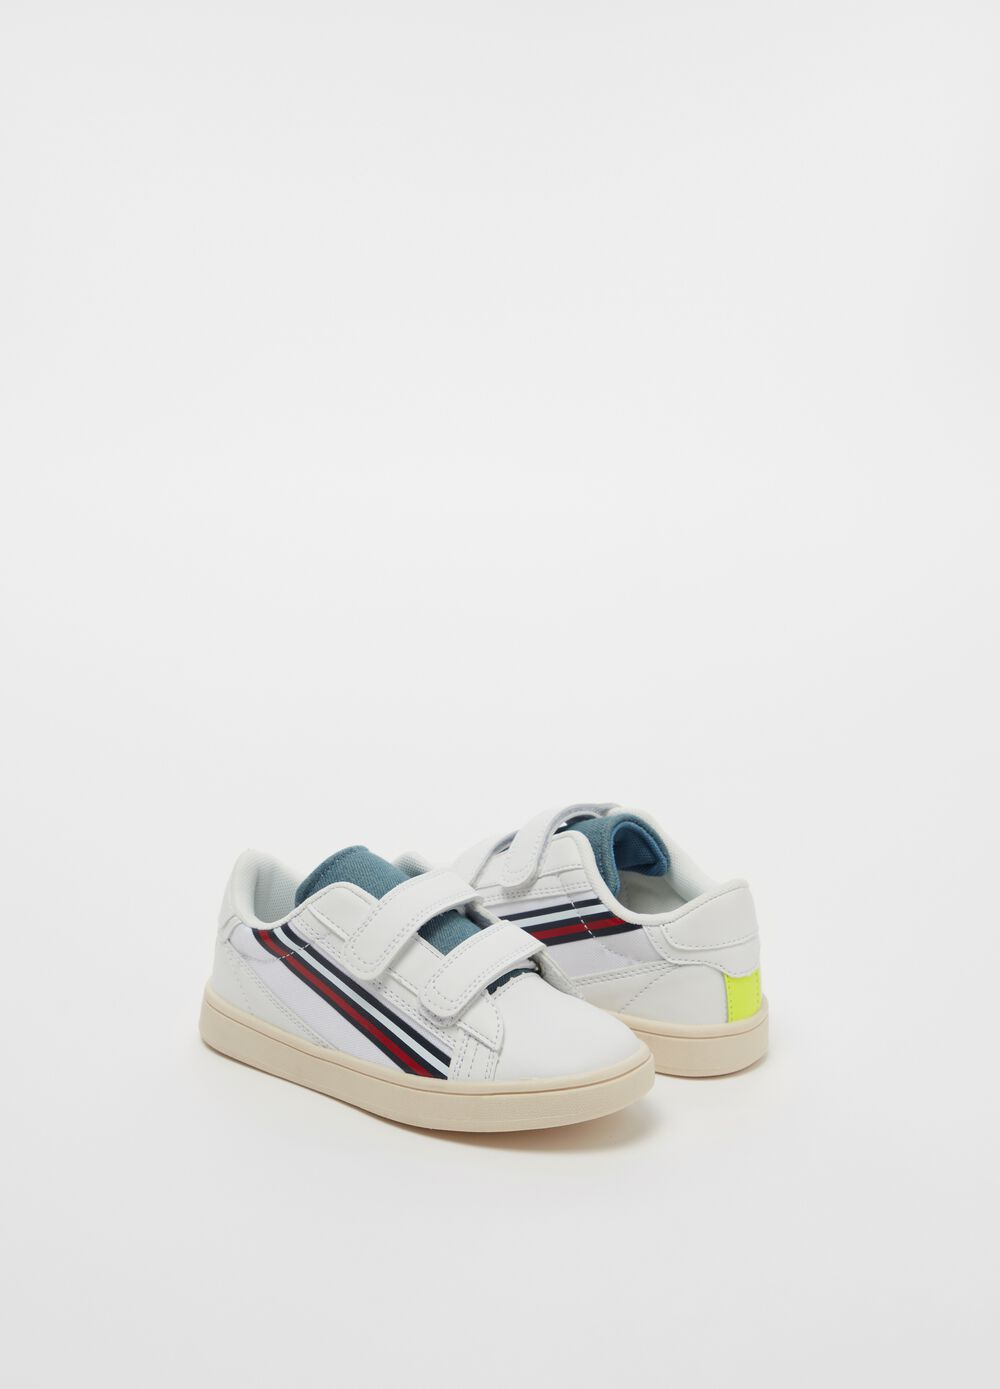 Striped sneakers with fluorescent detail